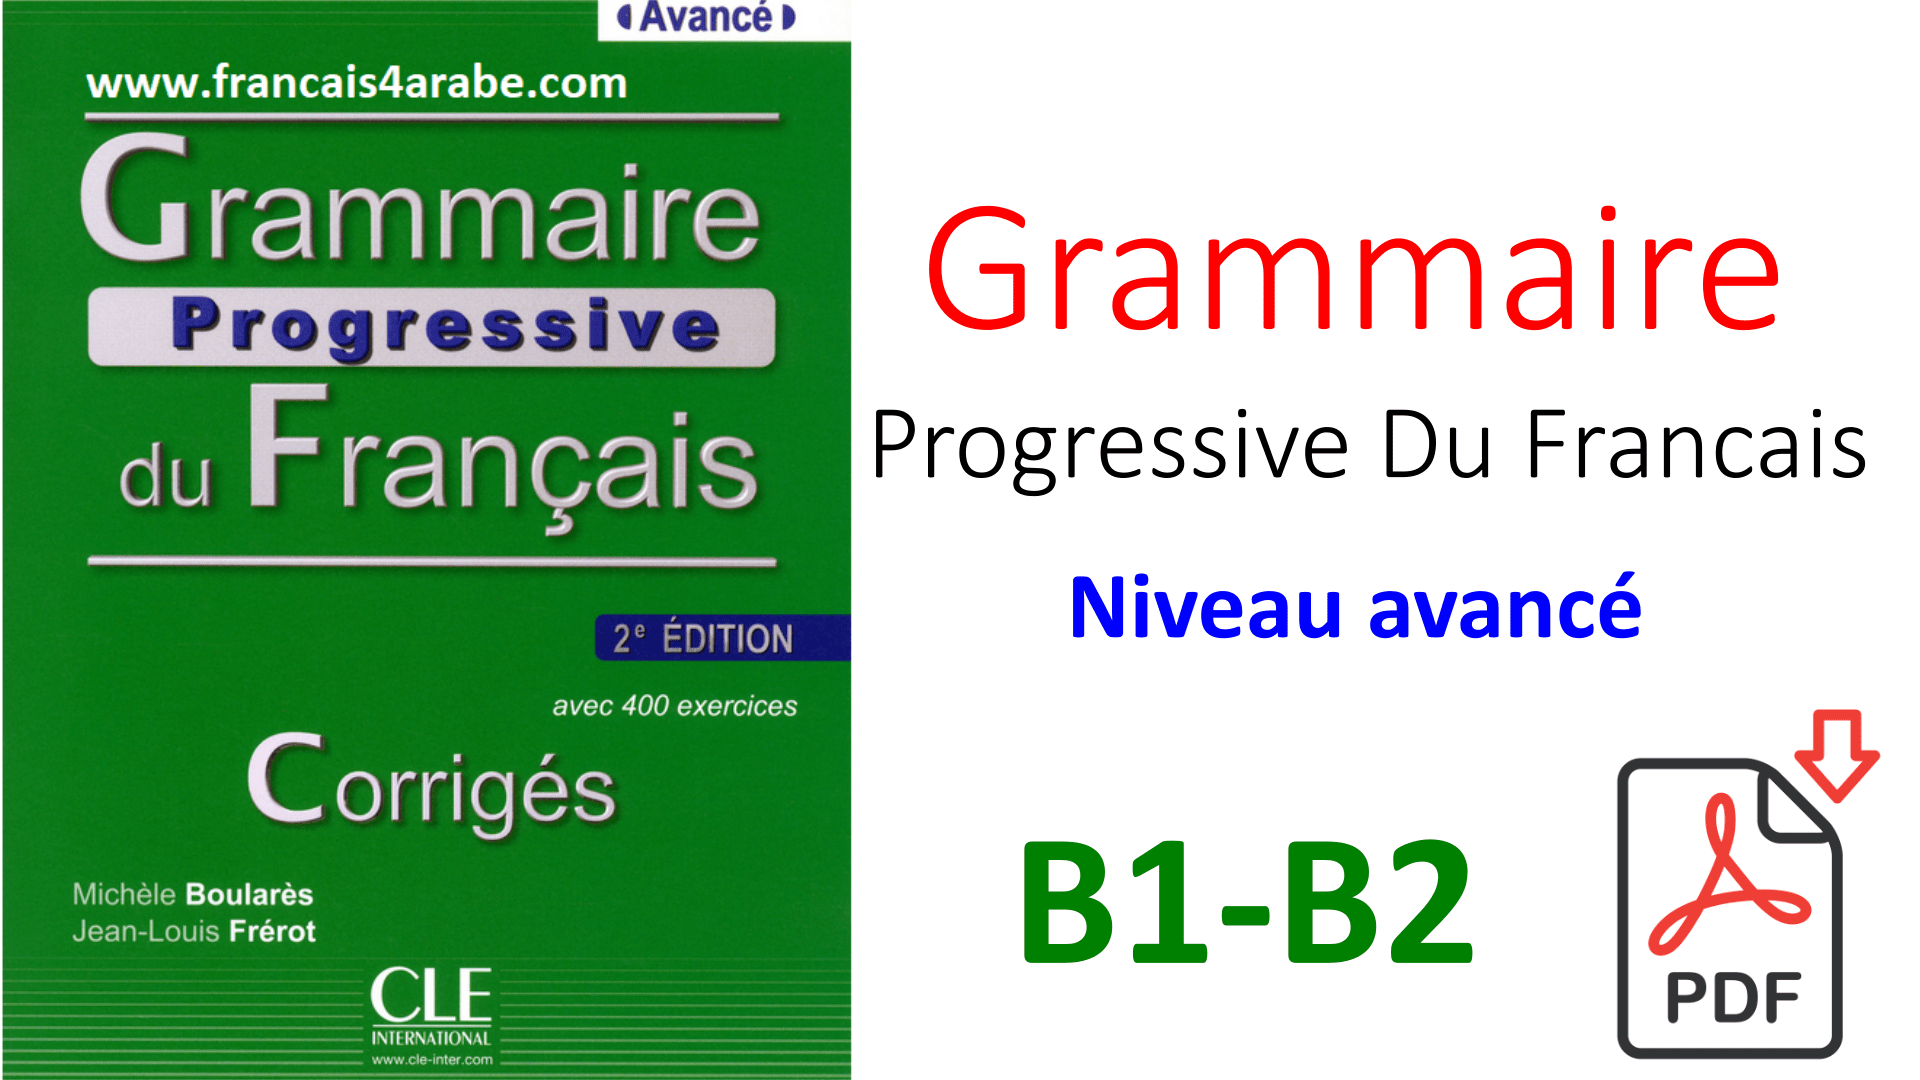 Telecharger Grammaire Progressive Du Francais Niveau Avance Pdf French Language Learning Download Books French Language